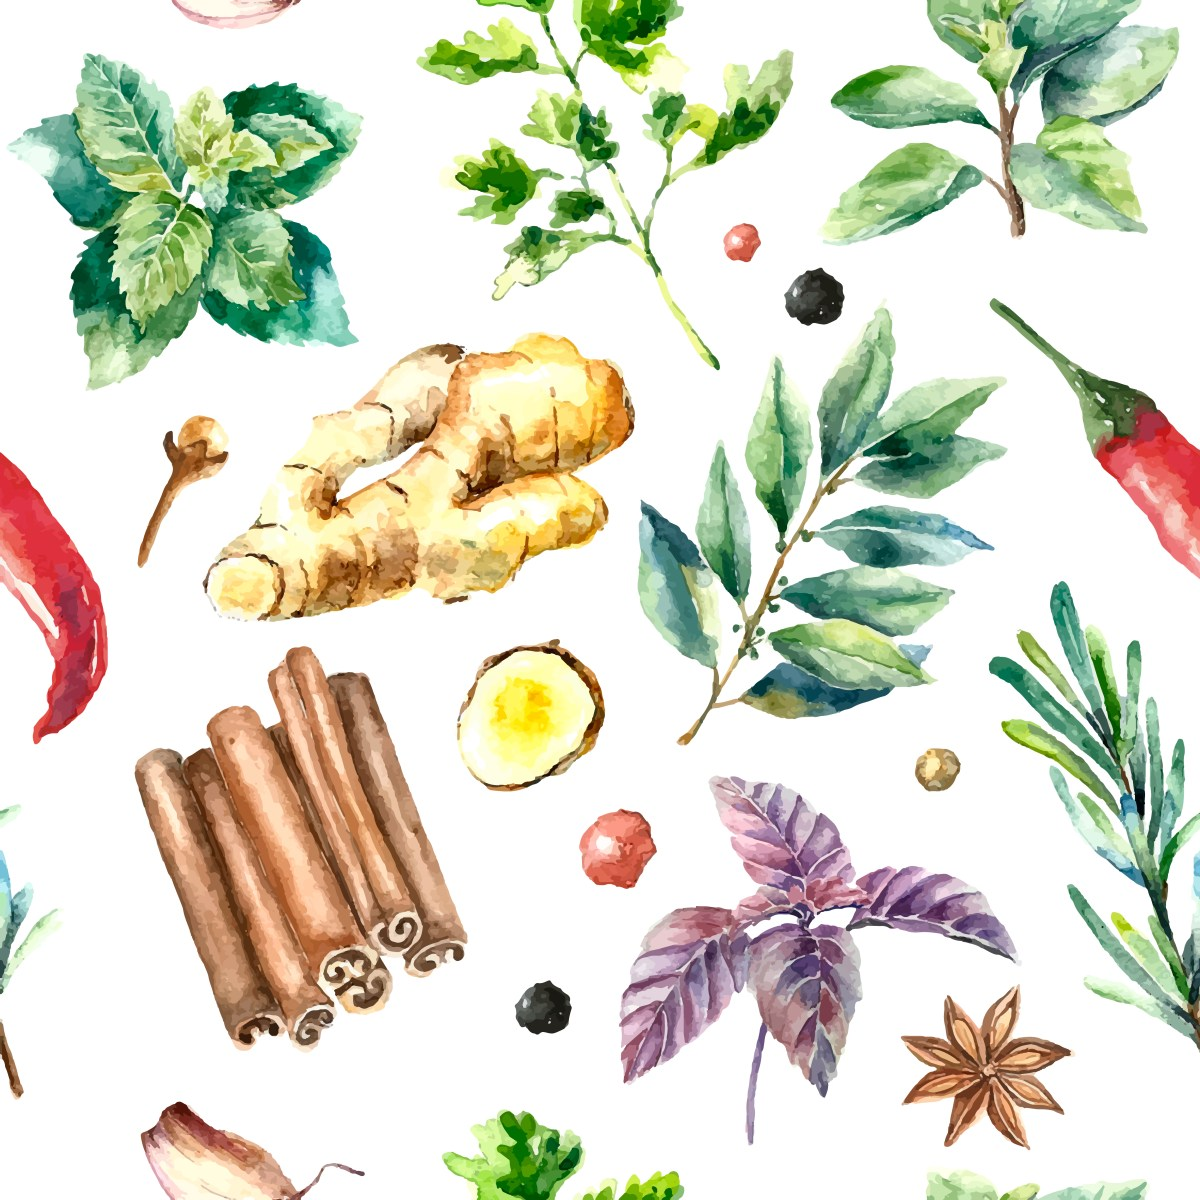 Herbs-and-spices-ill.jpg?fit=1200%2C1200